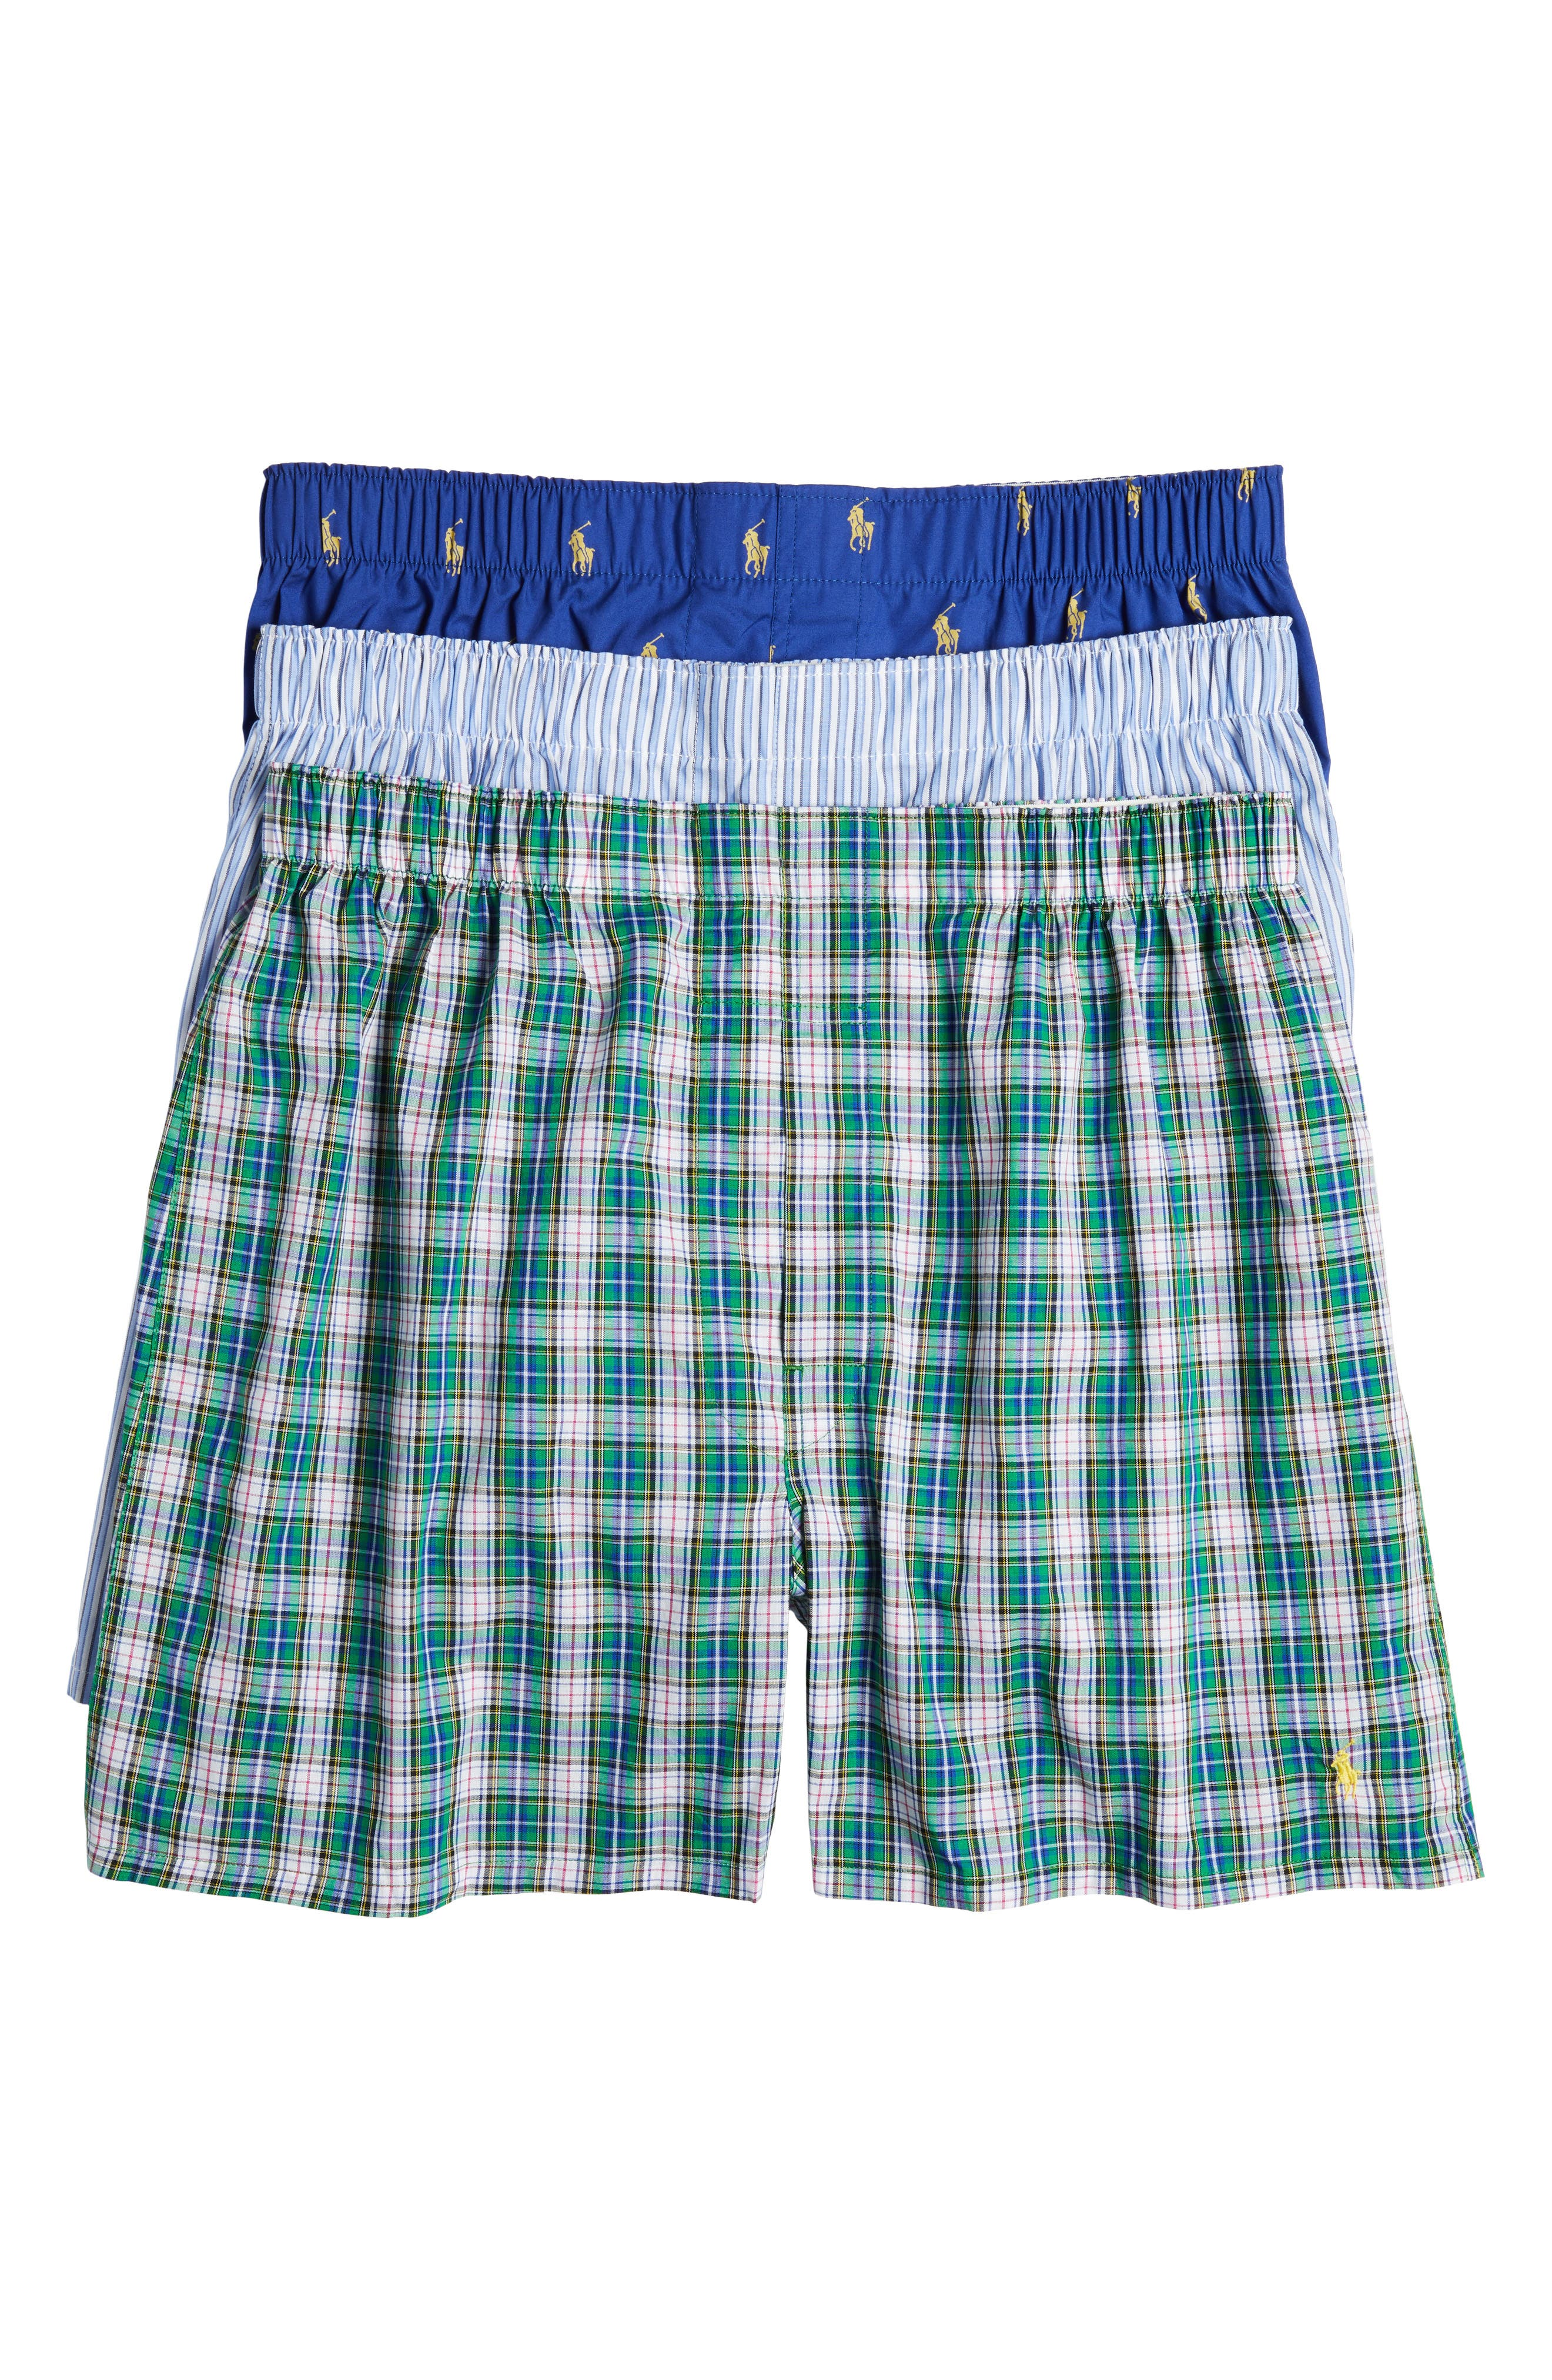 3-Pack Cotton Boxers,                             Main thumbnail 1, color,                             Bright Navy/ Blue/ Green